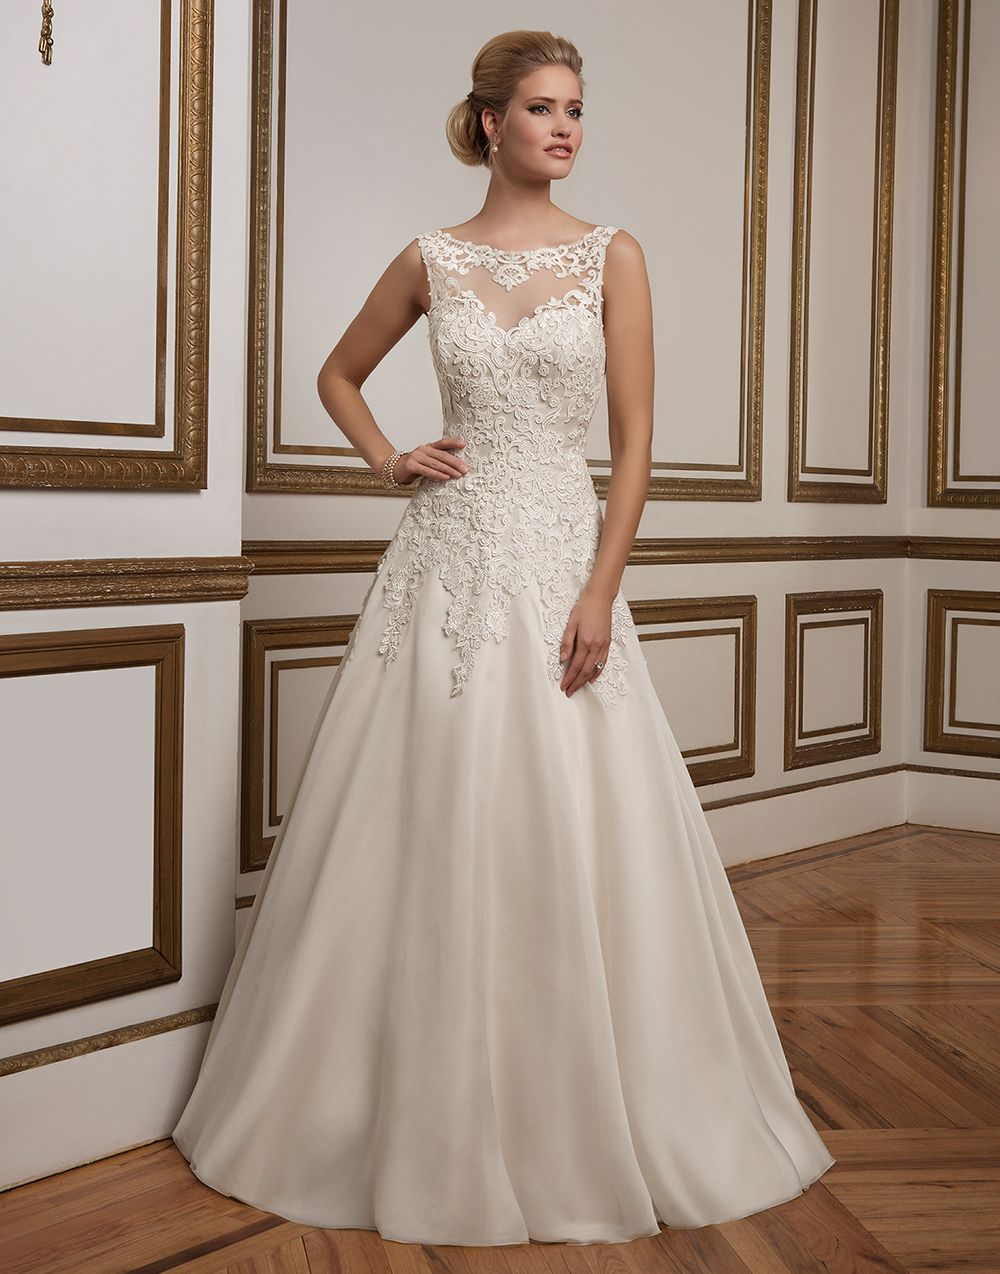 Justin Alexander Wedding Dresses Style 8835 Lace Adorns The Sabrina Illusion Neckline And Ed Bodice Of This Organza A Line Gown That Is Figure